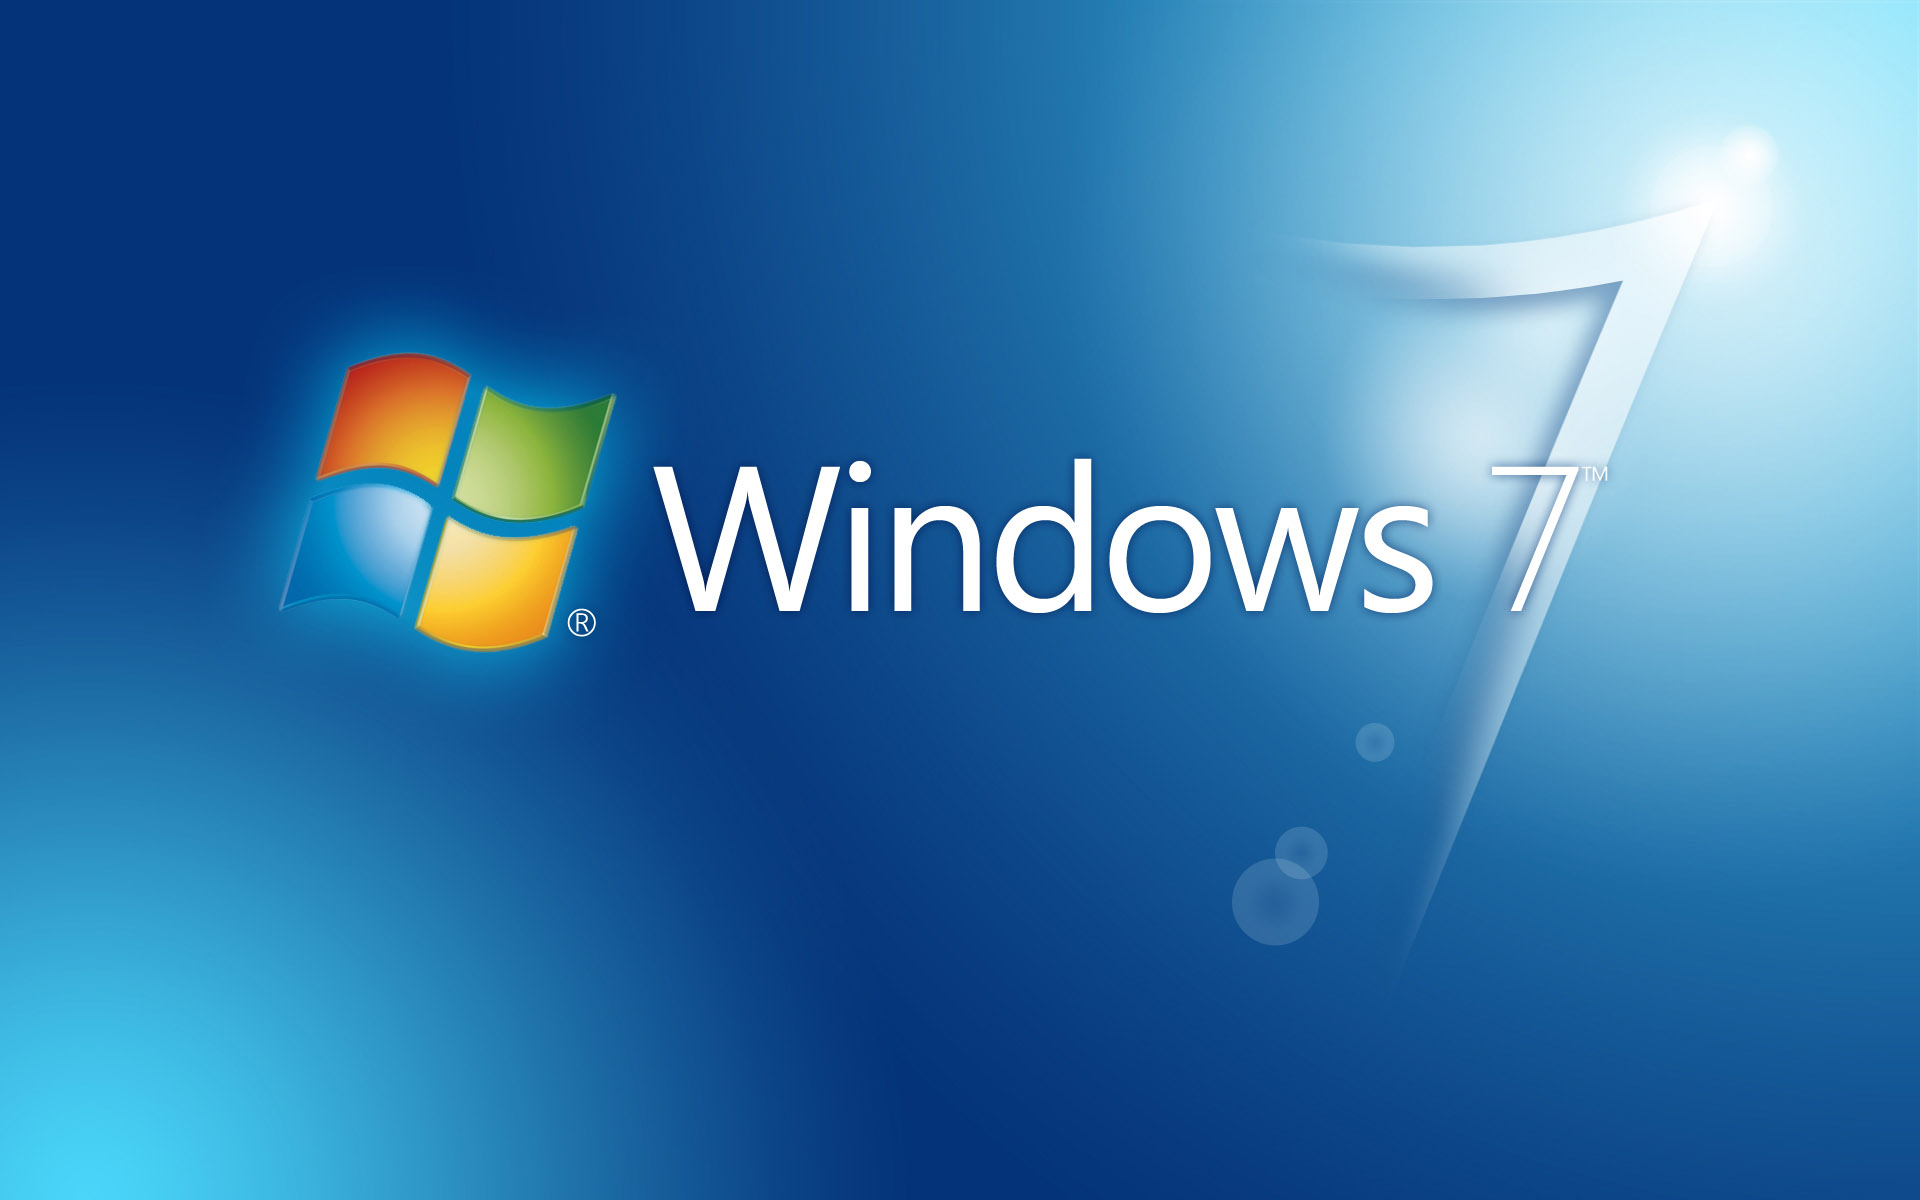 Image Windows 7 Wallpapers And Stock Photos